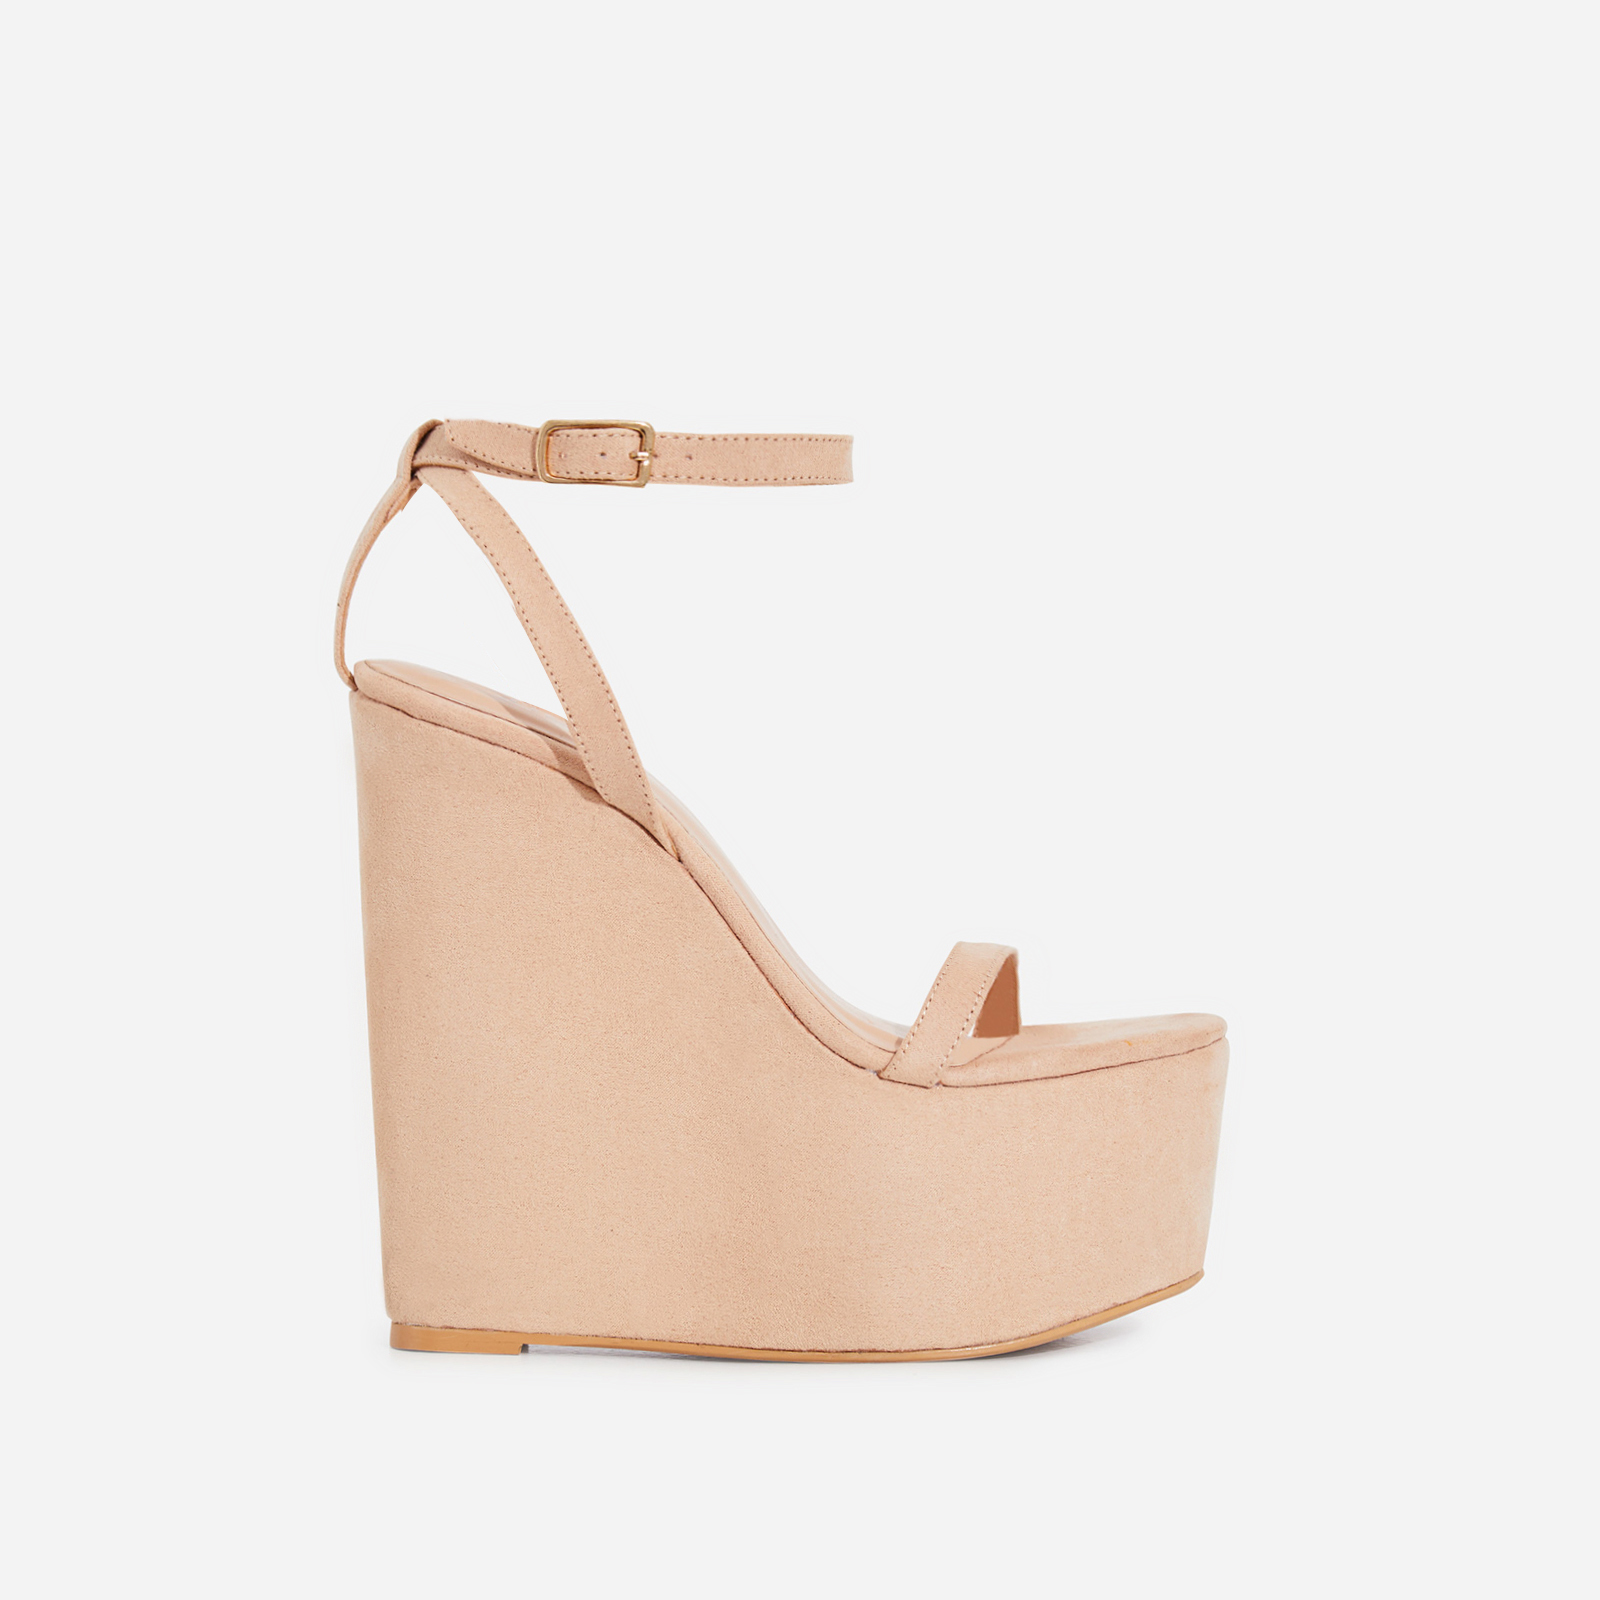 Sunlight Wedge Platform Heel In Nude Faux Suede